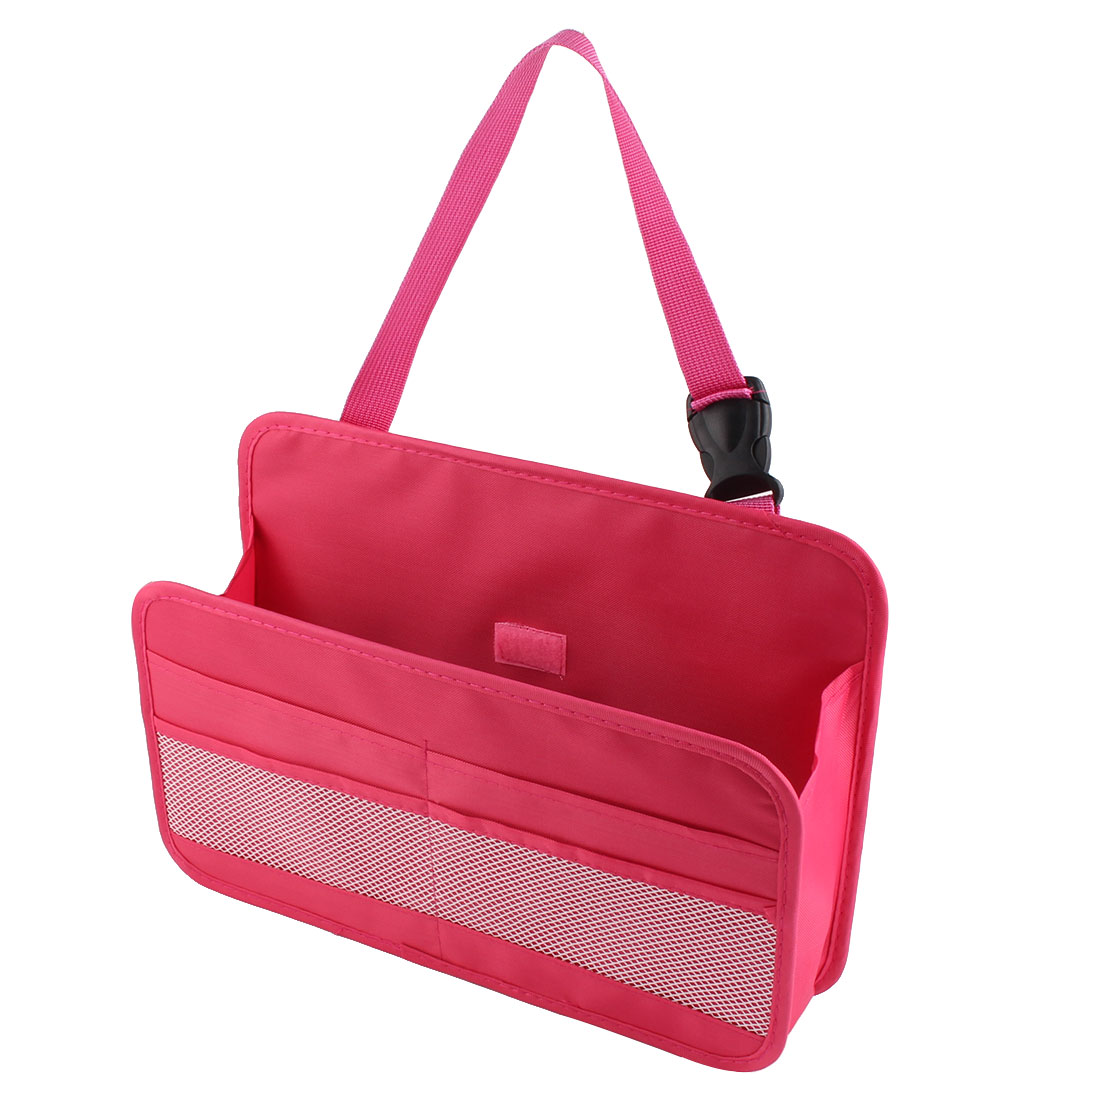 Car Automobile Multi Function Buckle Strap Phone Book Tissue Organizer Storage Box Container Magenta